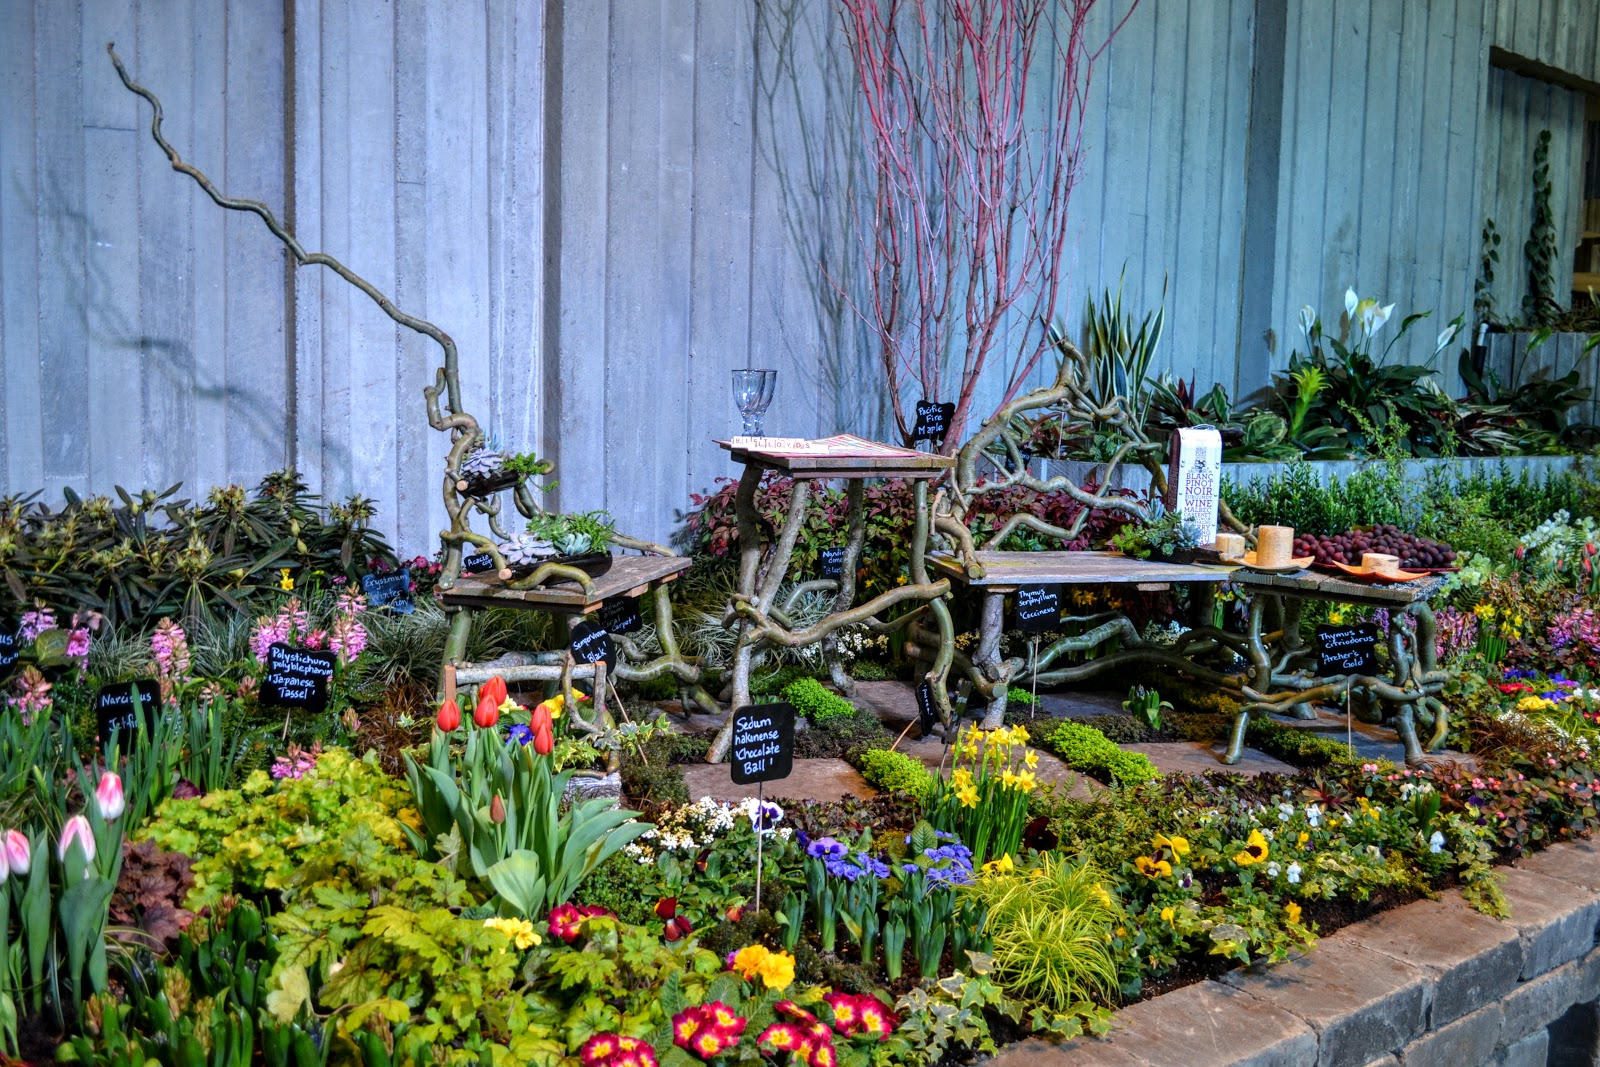 northwest flower garden festival and terra firma hardscapes 2018 theme garden - Northwest Flower And Garden Show